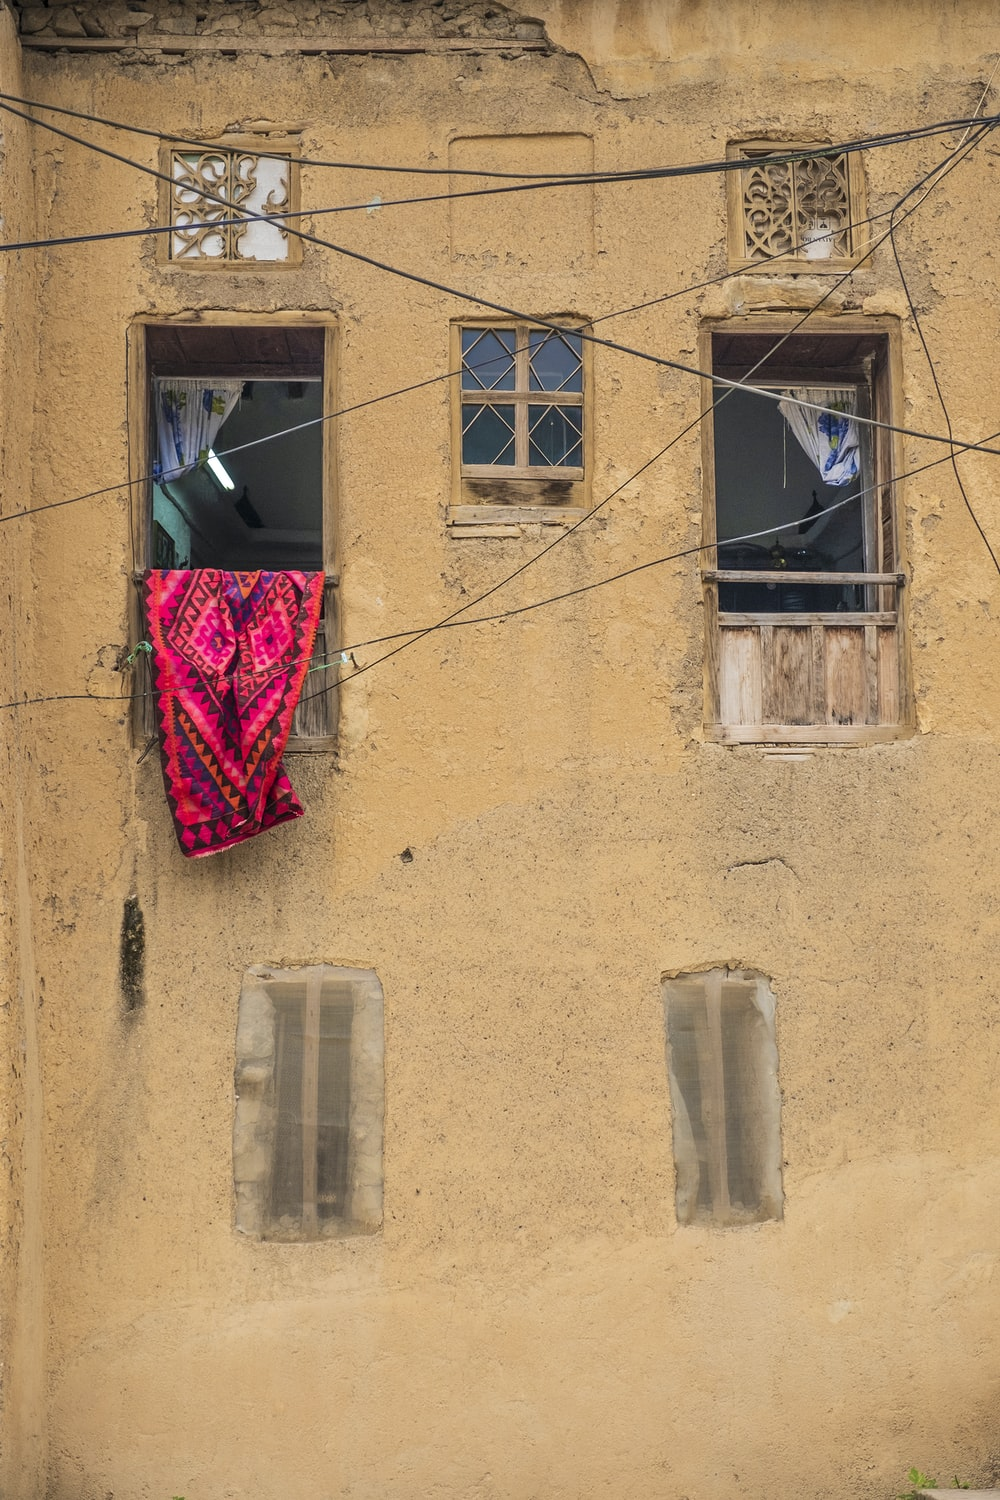 red cloth hanging on window